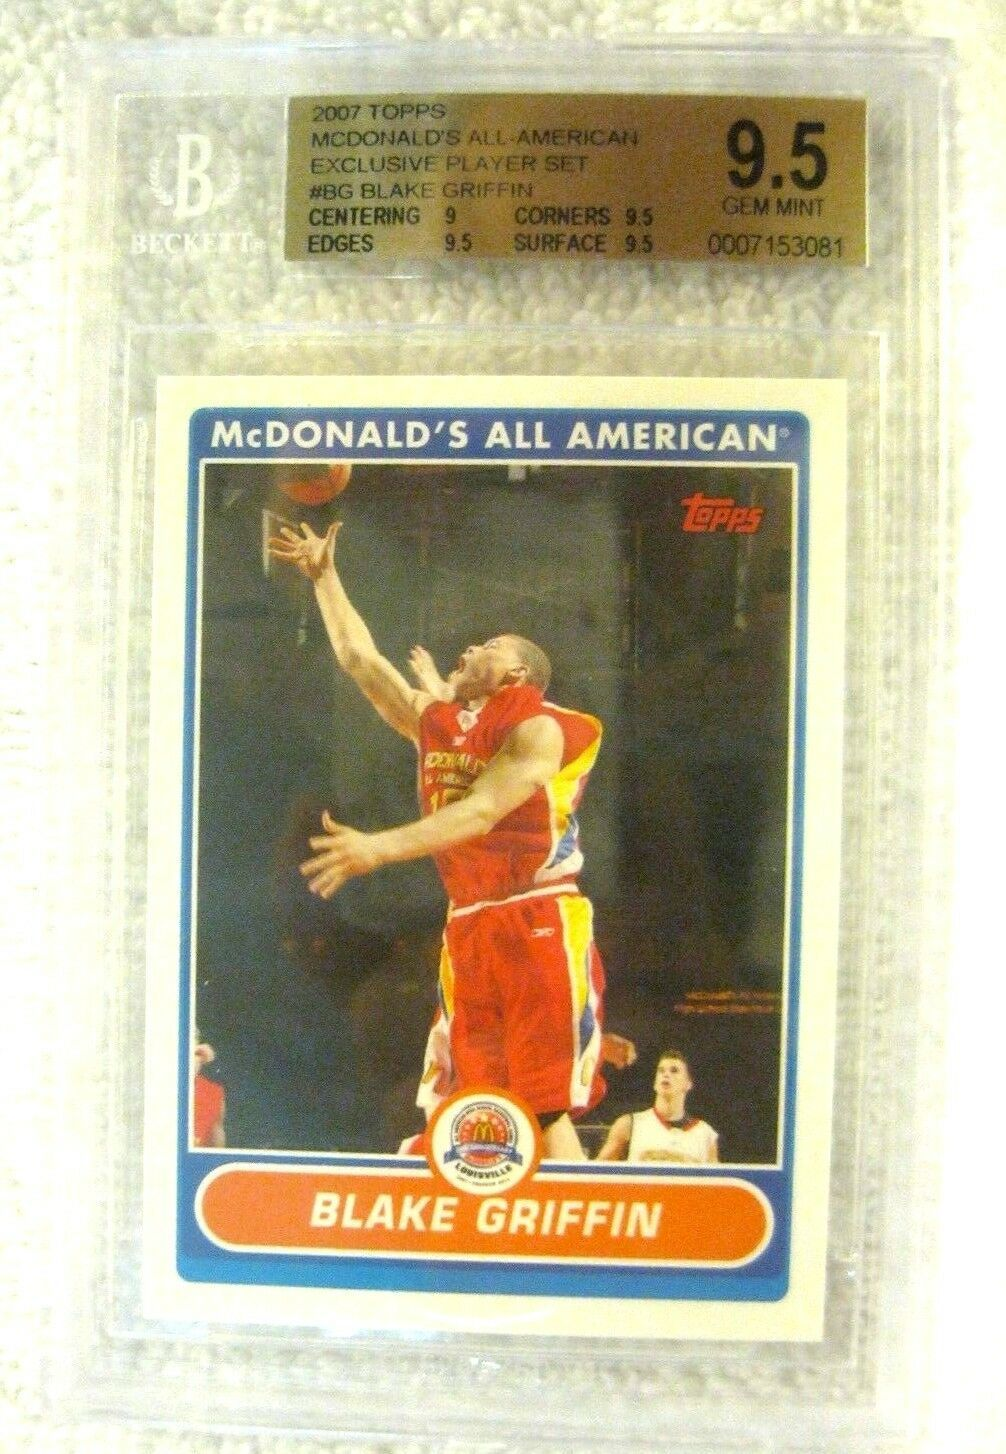 Blake Griffin RC 2007 Topps McDonald's All-American RC GEM BGS 9.5-Cippers F RC